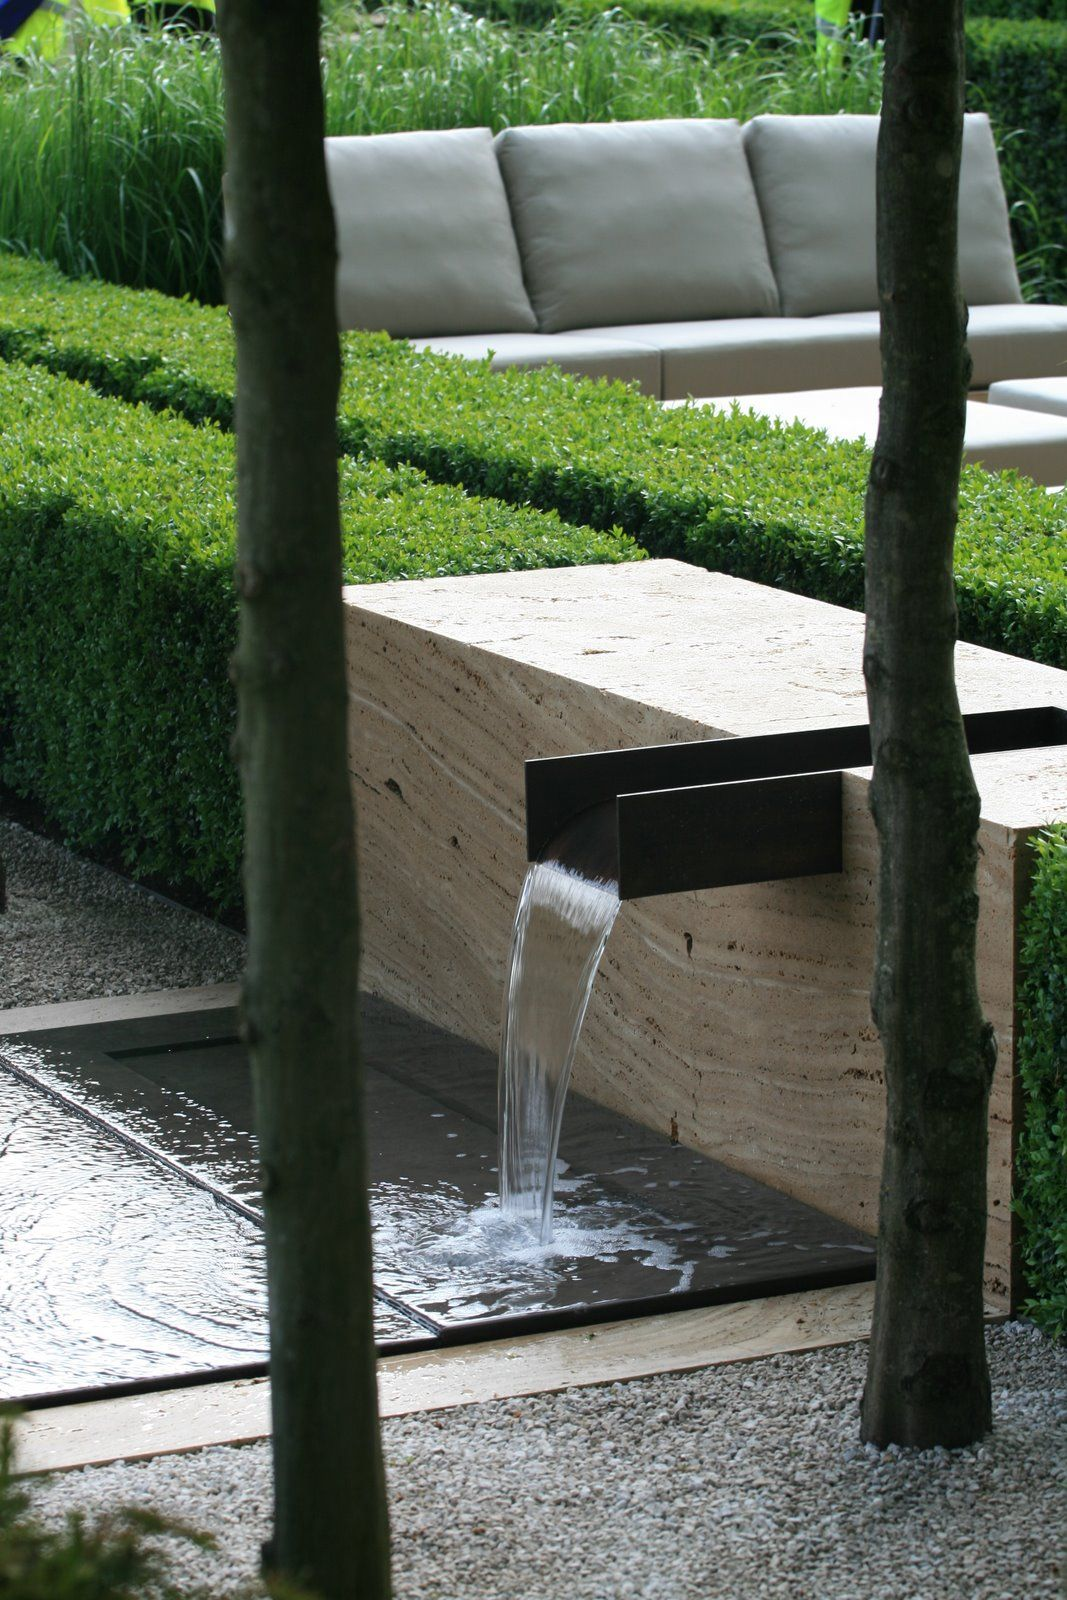 Modern Water Features Water Feature Luciano Giubbilei Water Features Water And Modern